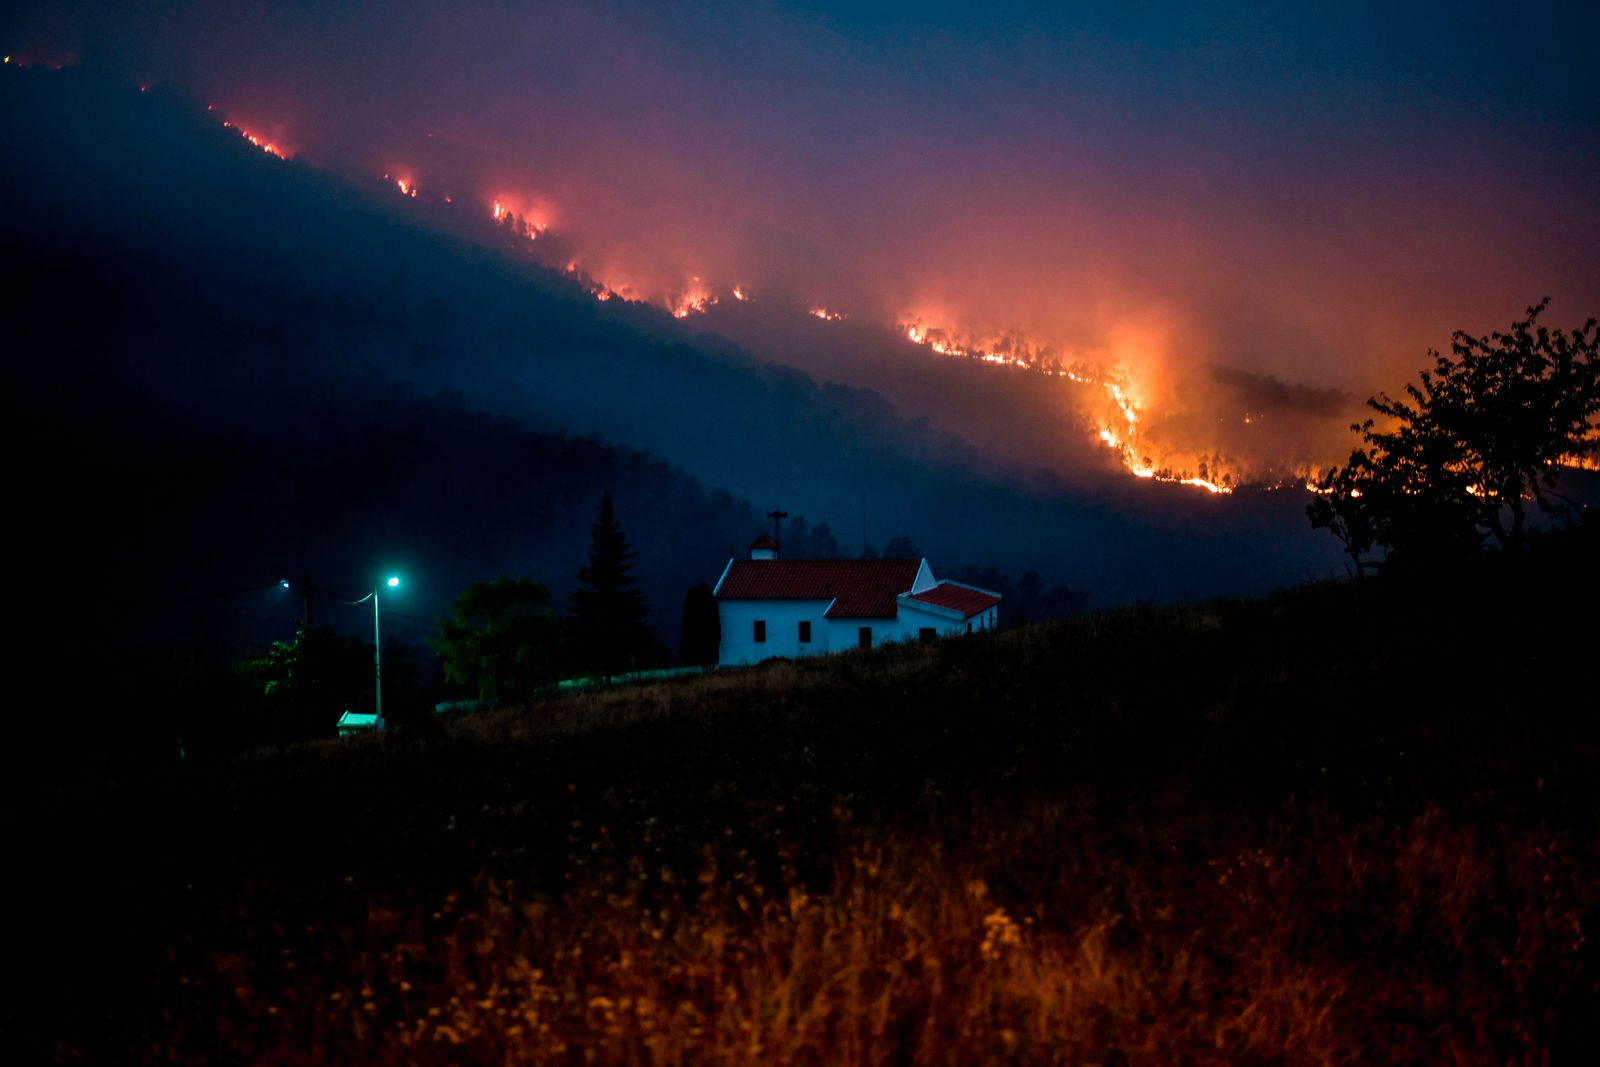 TOPSHOT-PORTUGAL-WILDFIRES